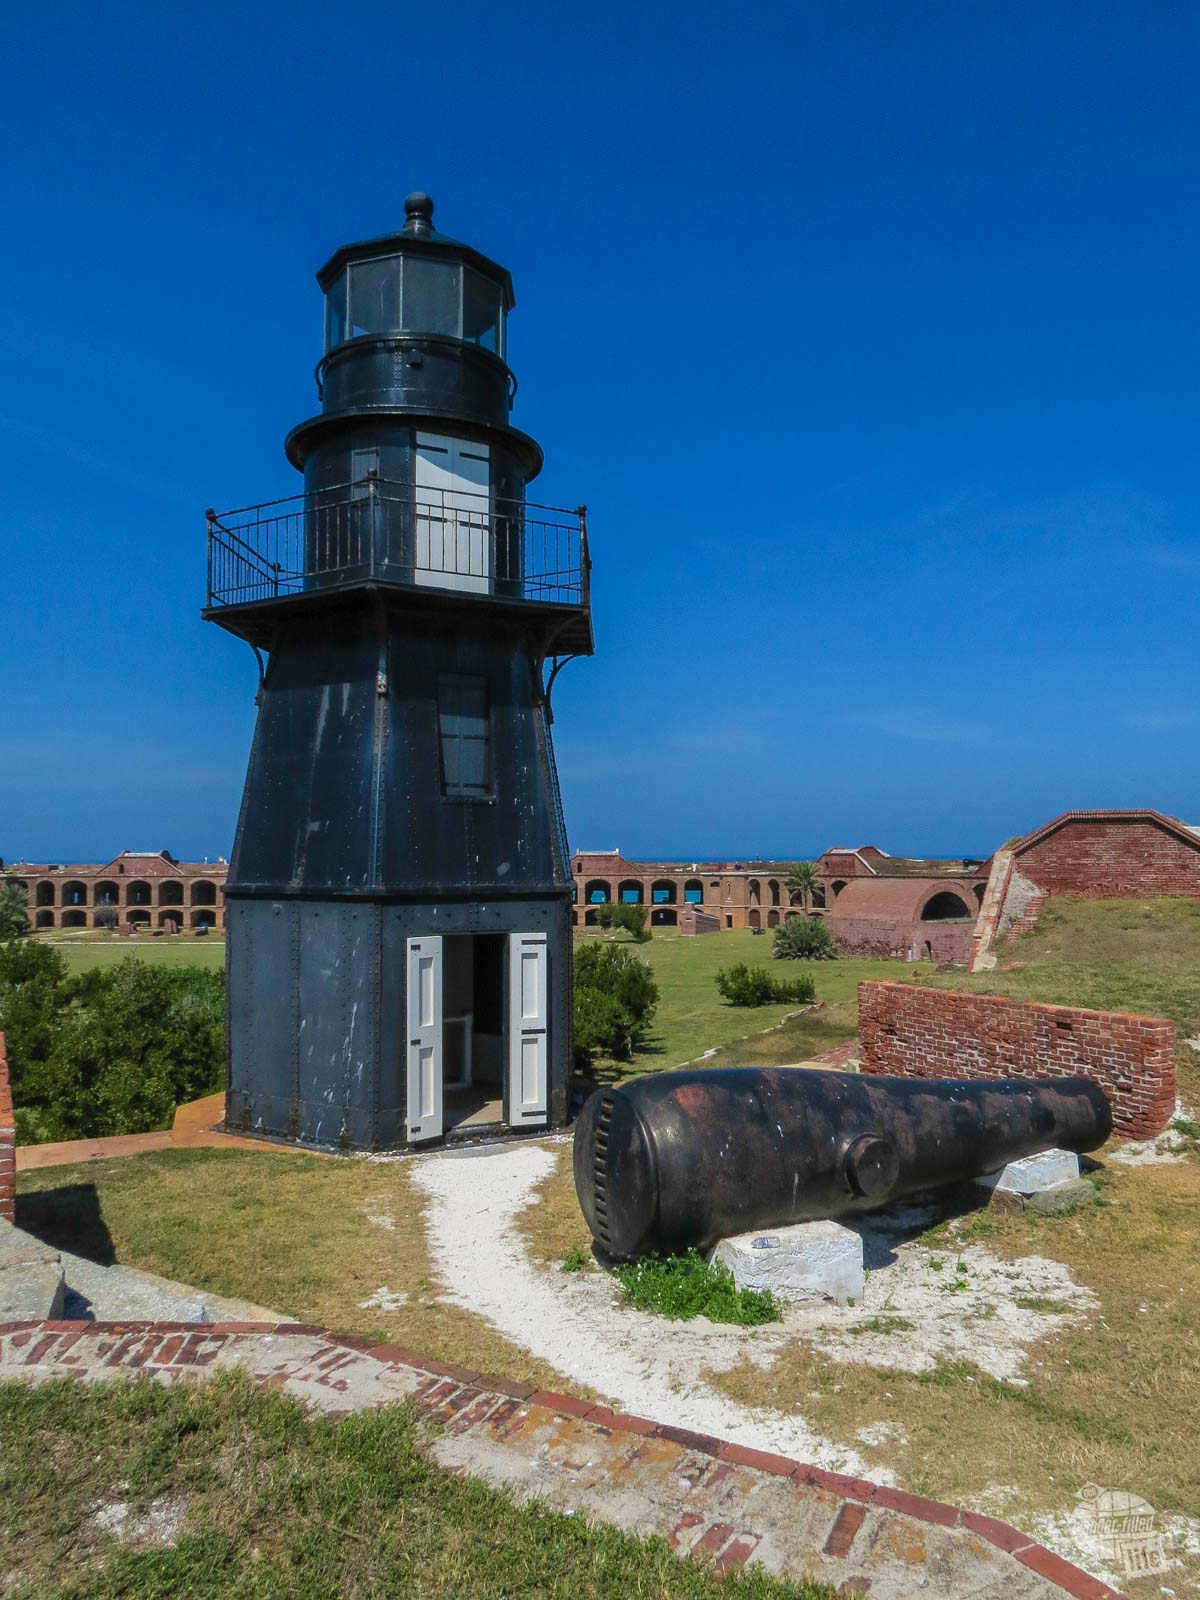 The Fort Jefferson Light at Dry Tortugas National Park.